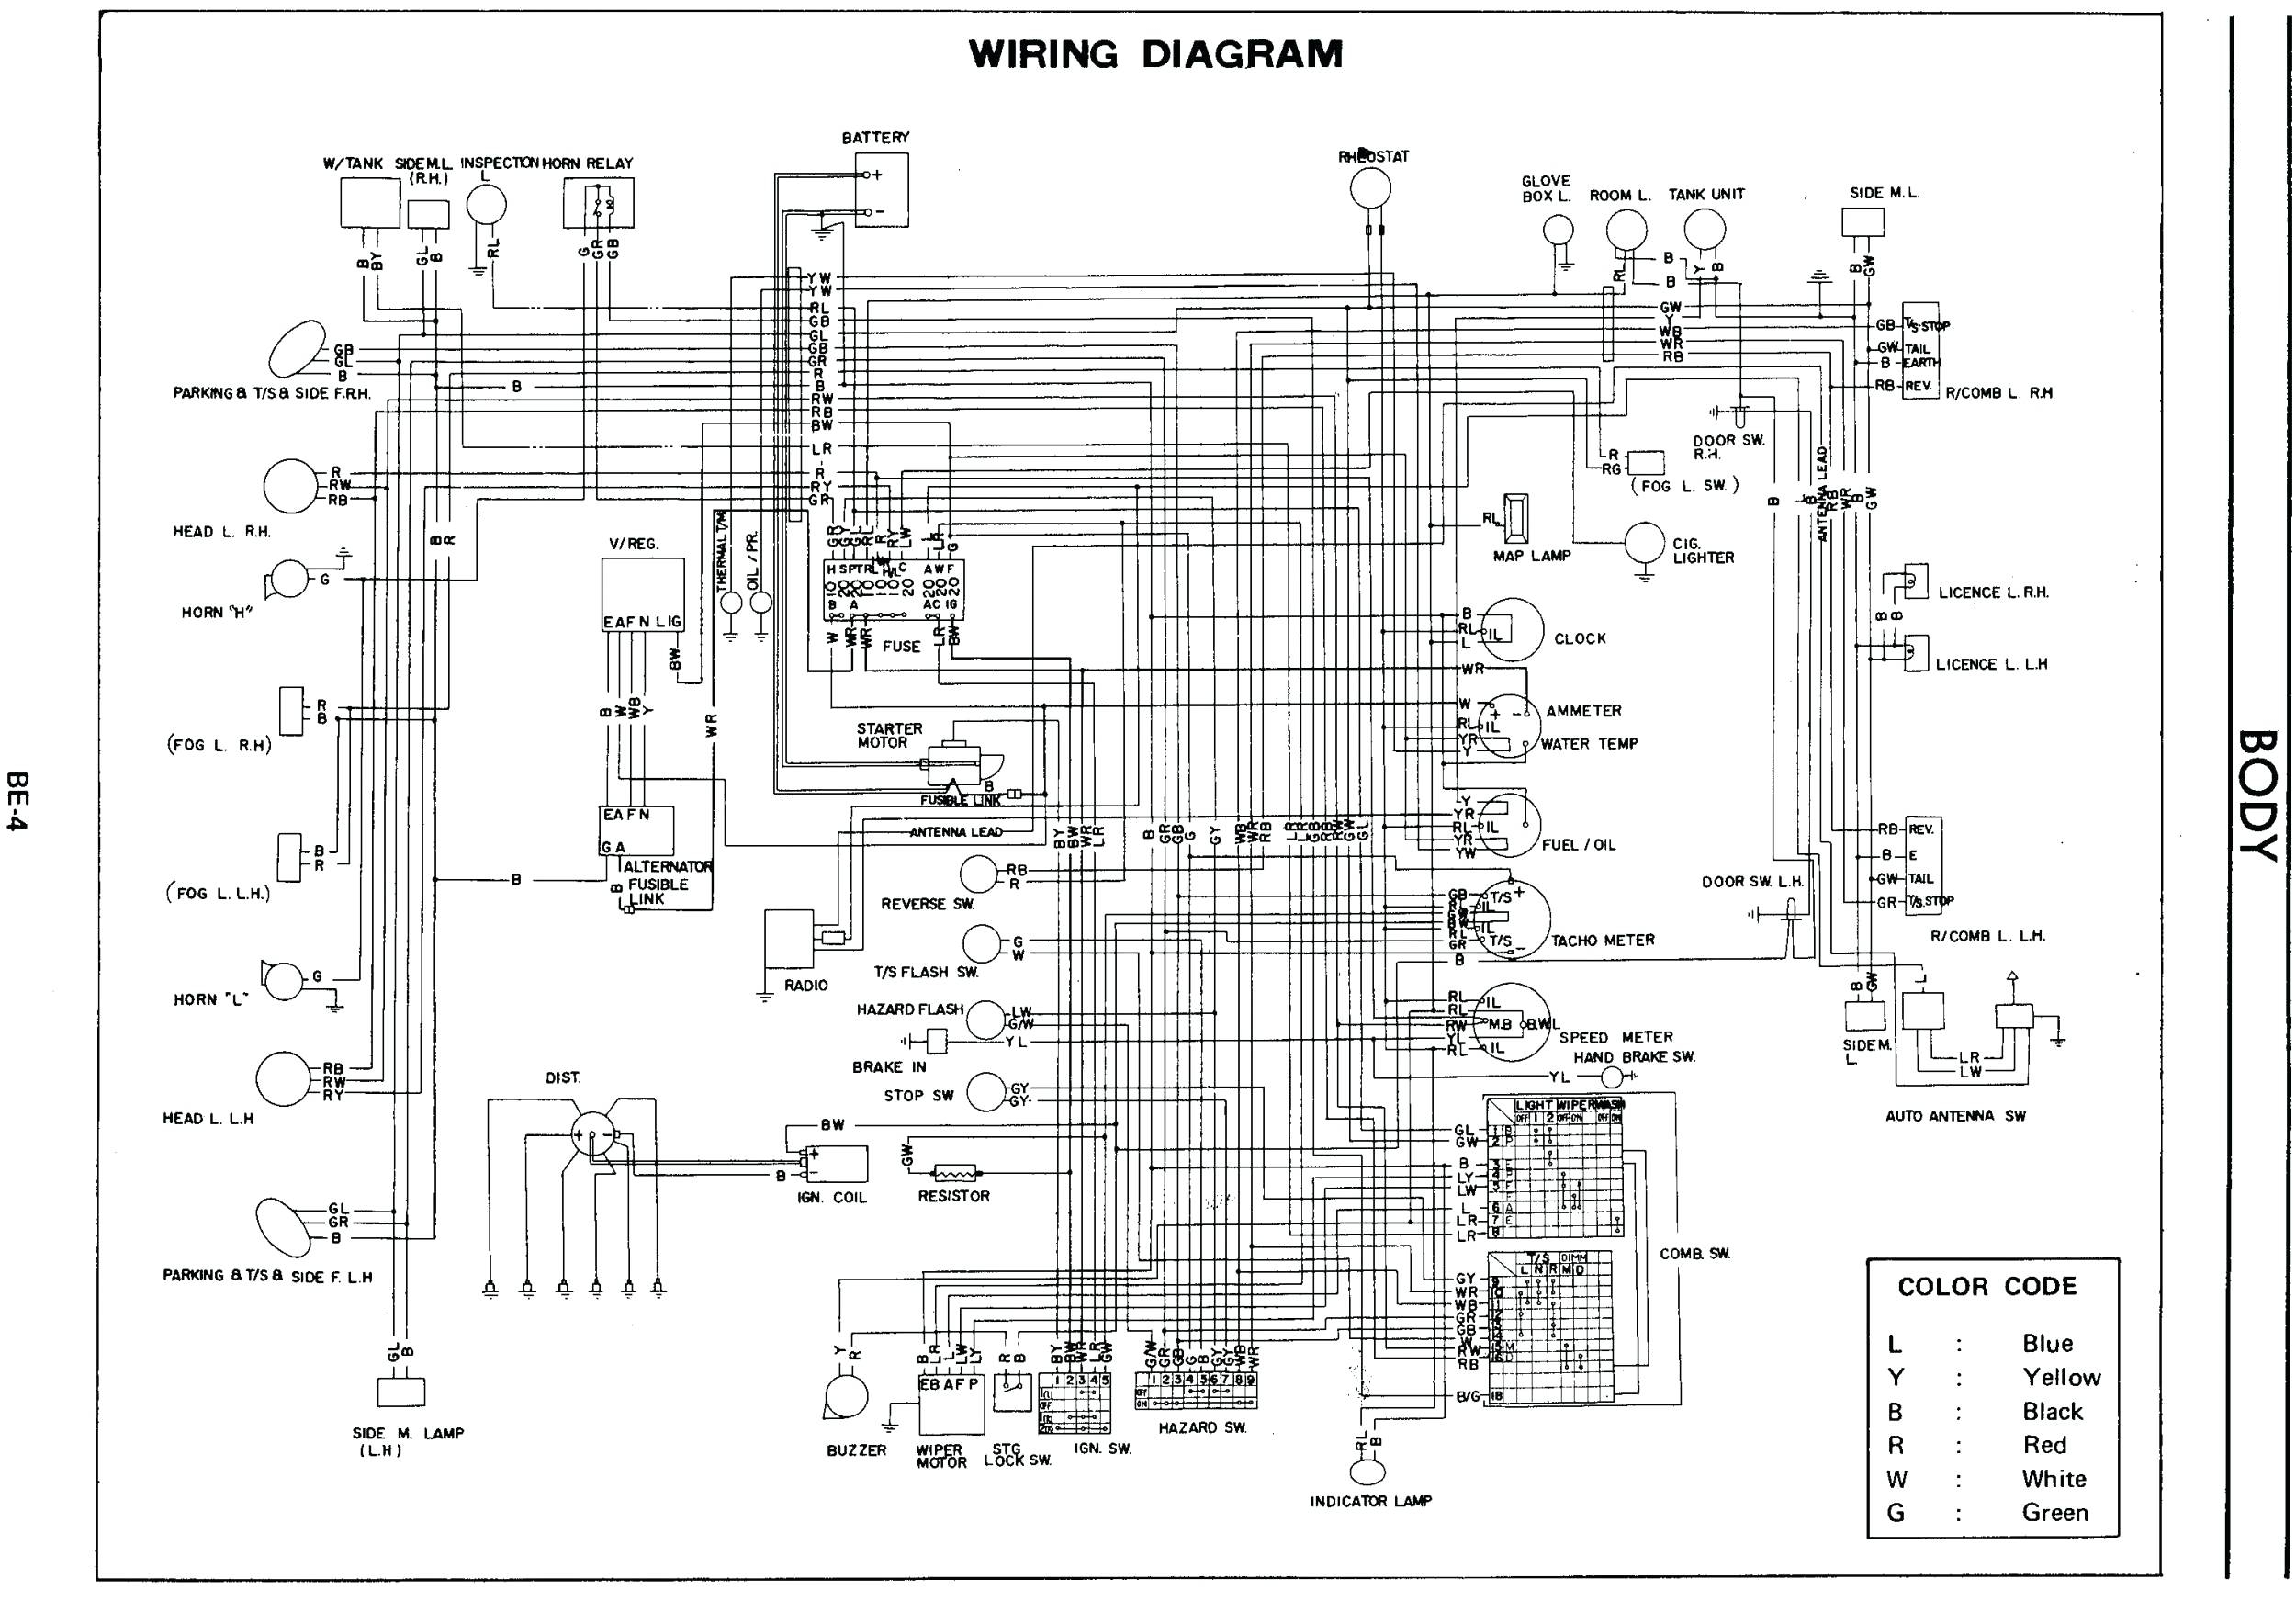 1988 mini wiring diagram wiring diagram rh w42 vom winnenthal de